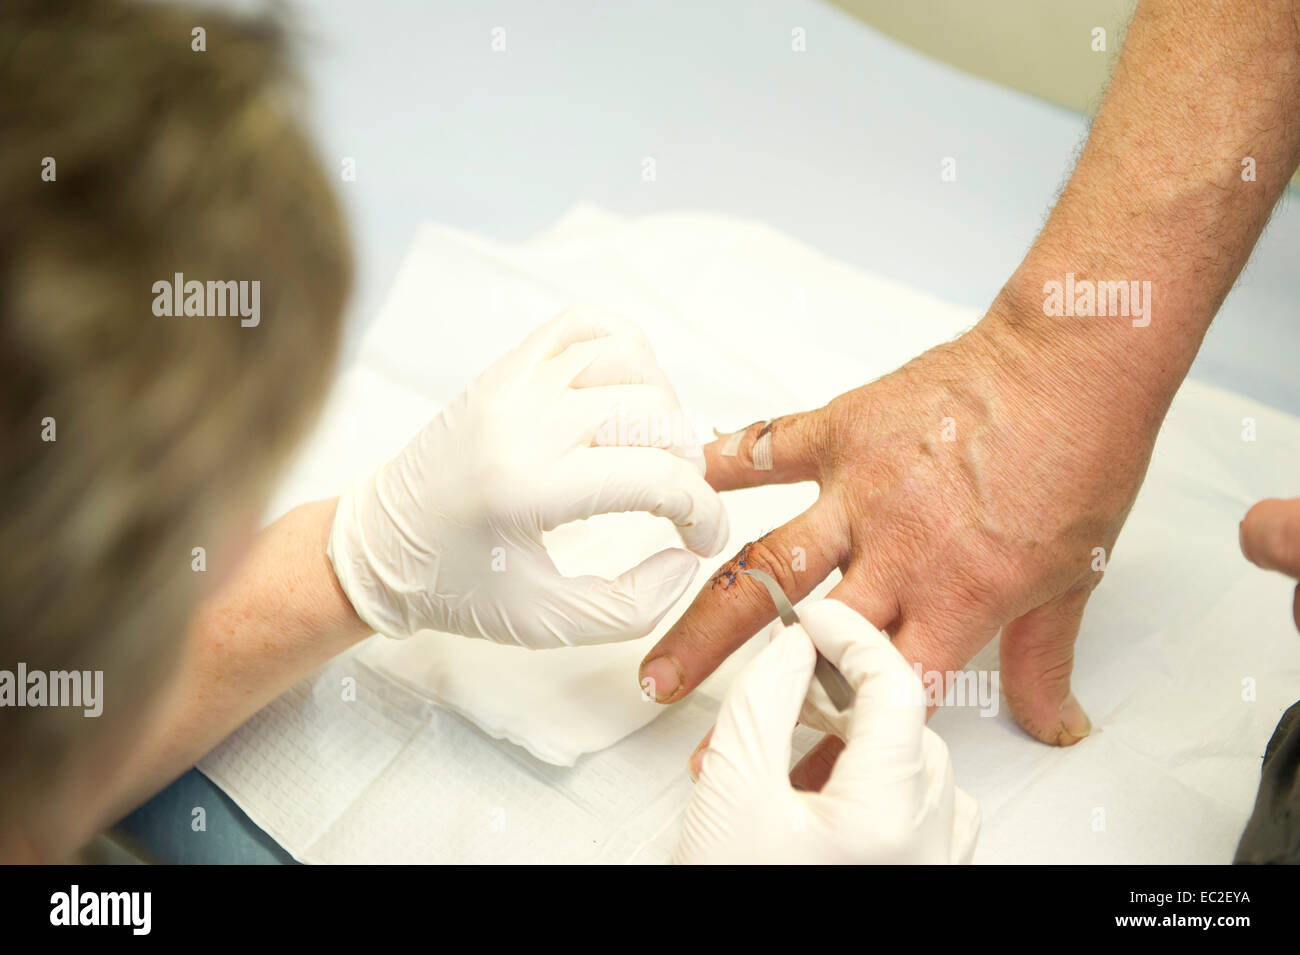 A nurse dresses a wound at an NHS clinic - Stock Image